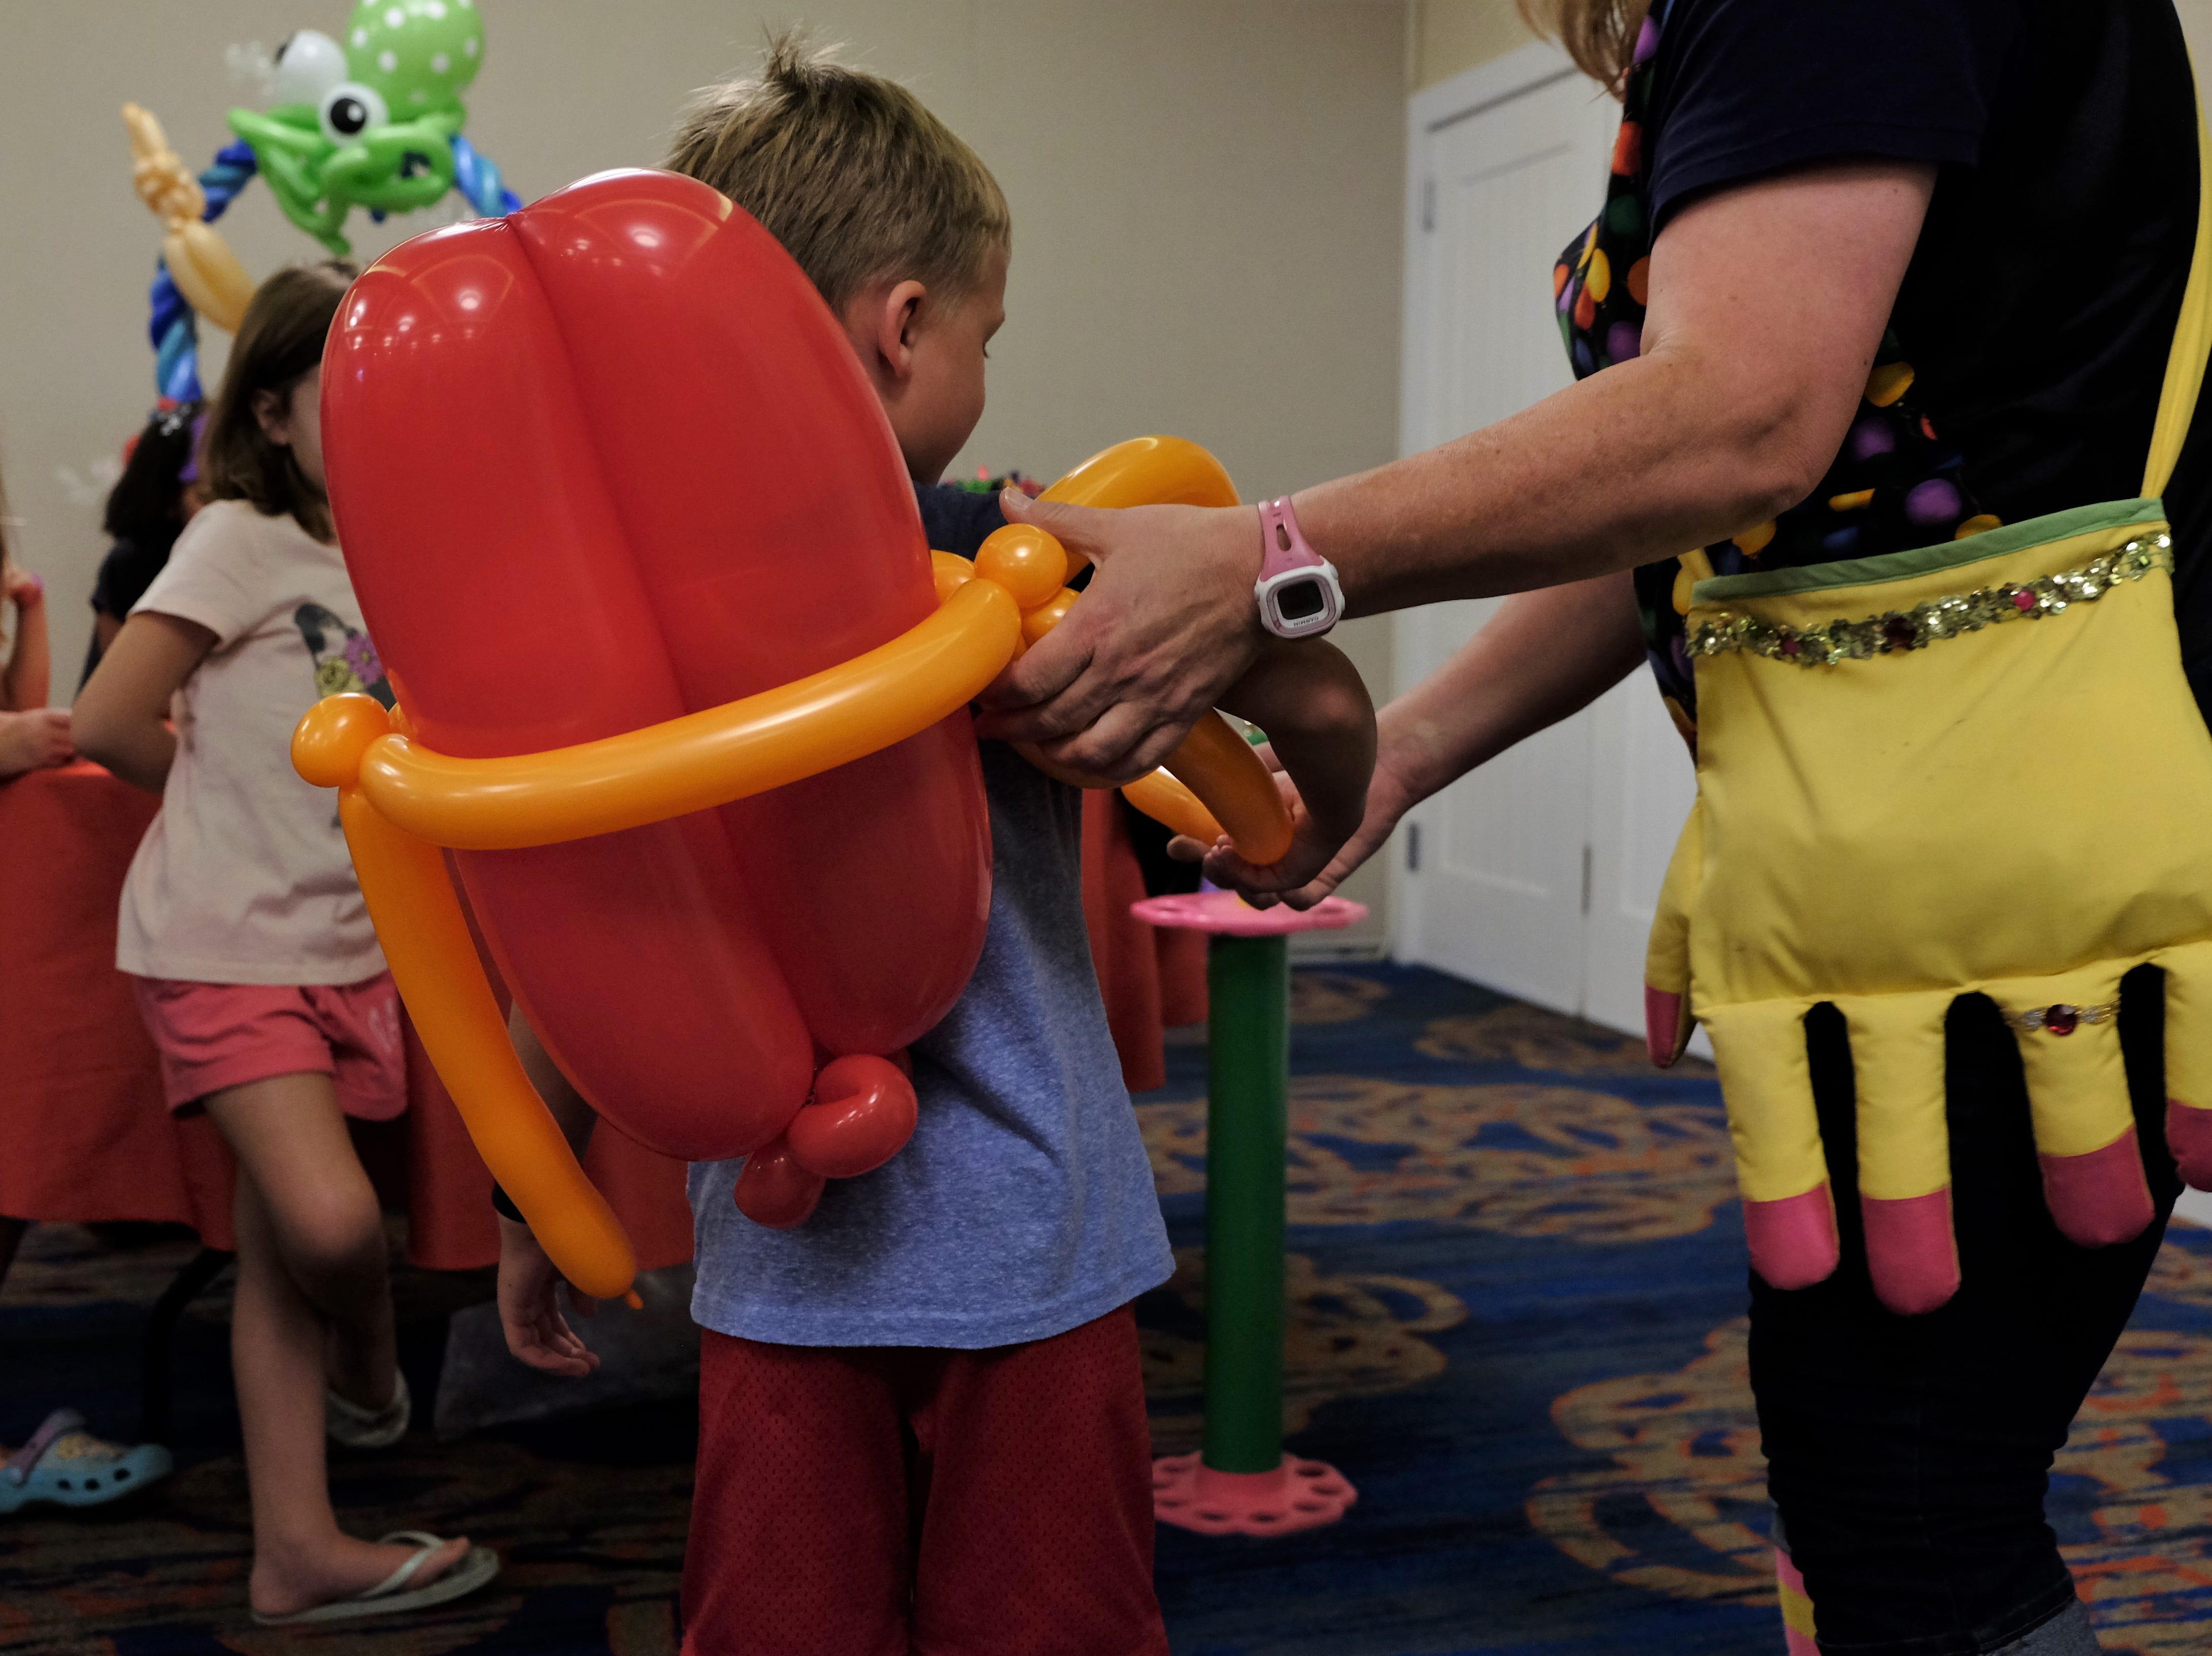 Renate McIntosh, an entertainer, helps a boy into his jet pack on Aug. 15 at Bethany Beach Ocean Suites.